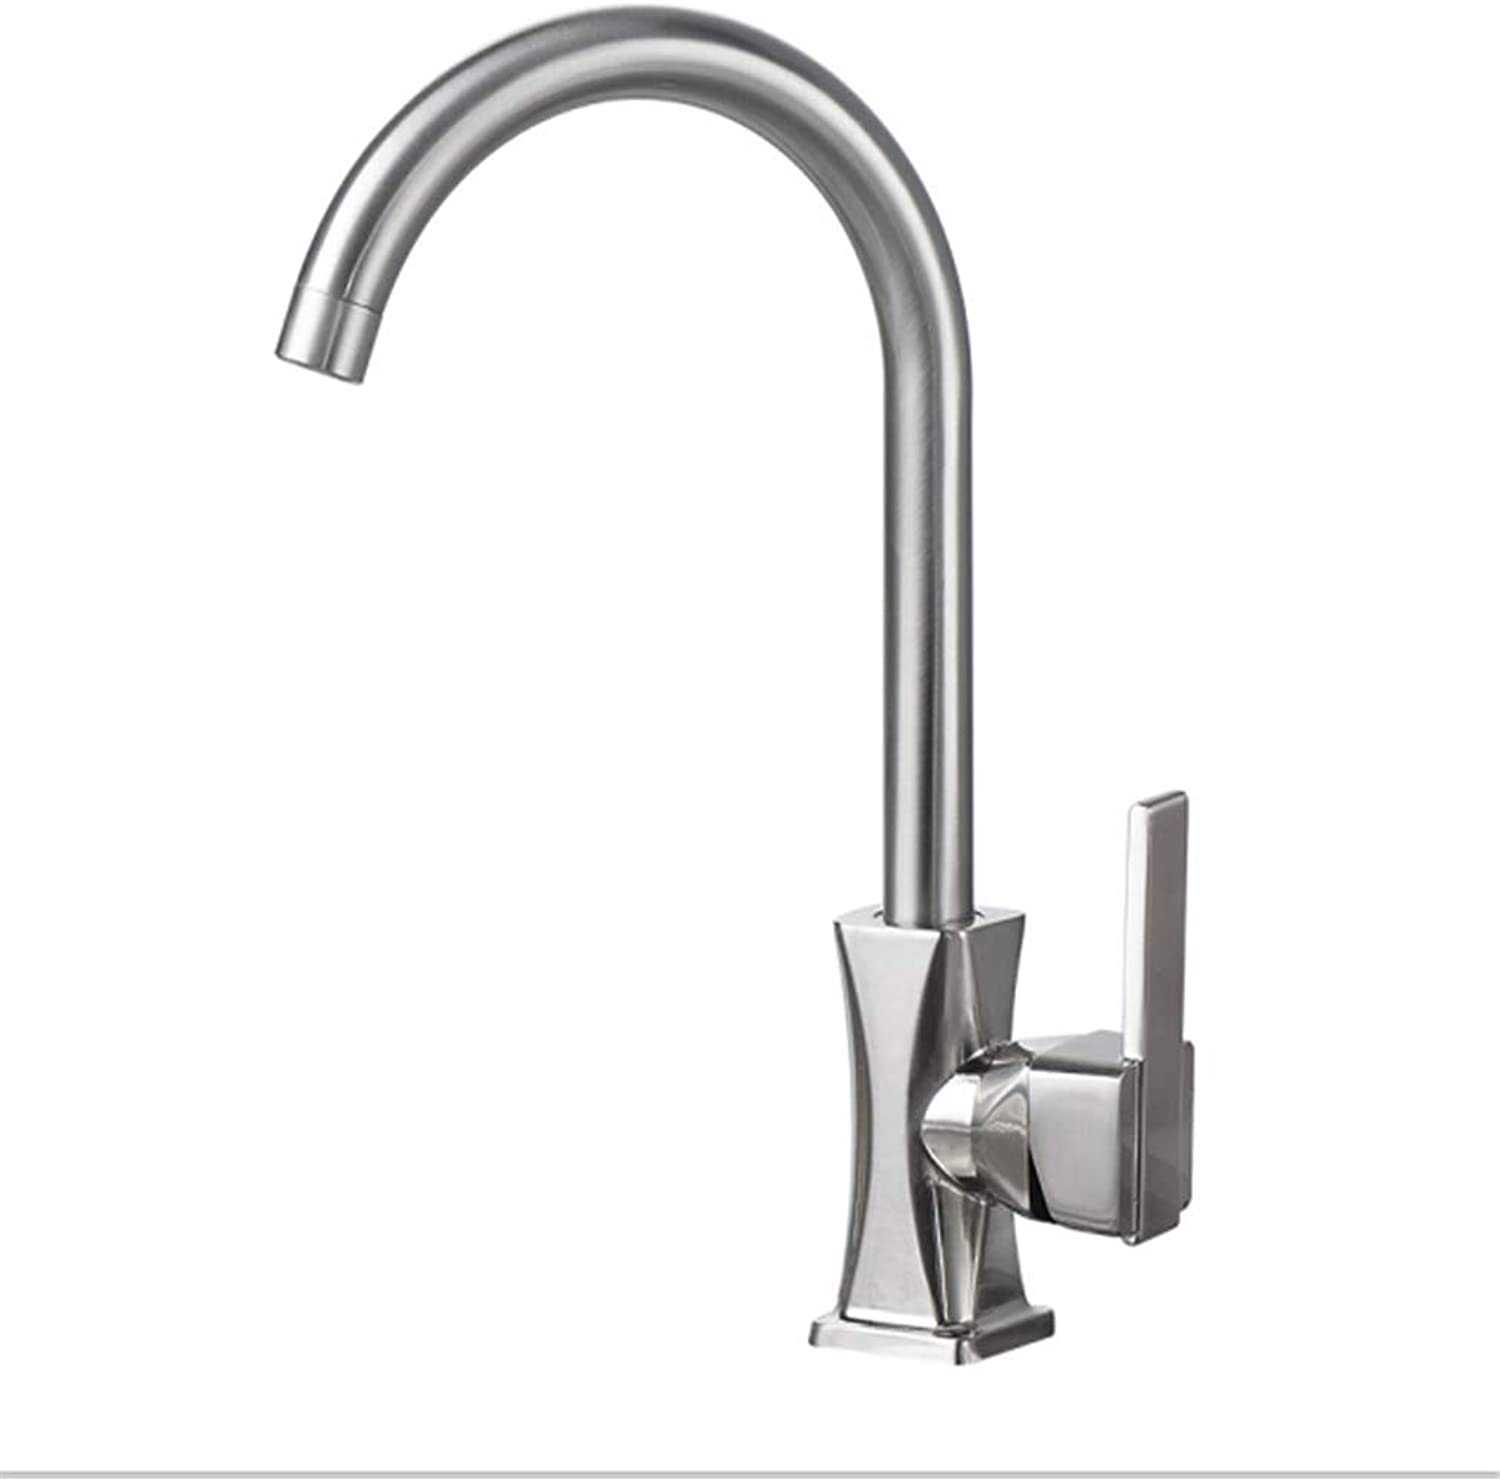 Counter Drinking Designer Archkitchen 304 Stainless Steel Faucet Lead-Free Sink Hot and Cold Faucet